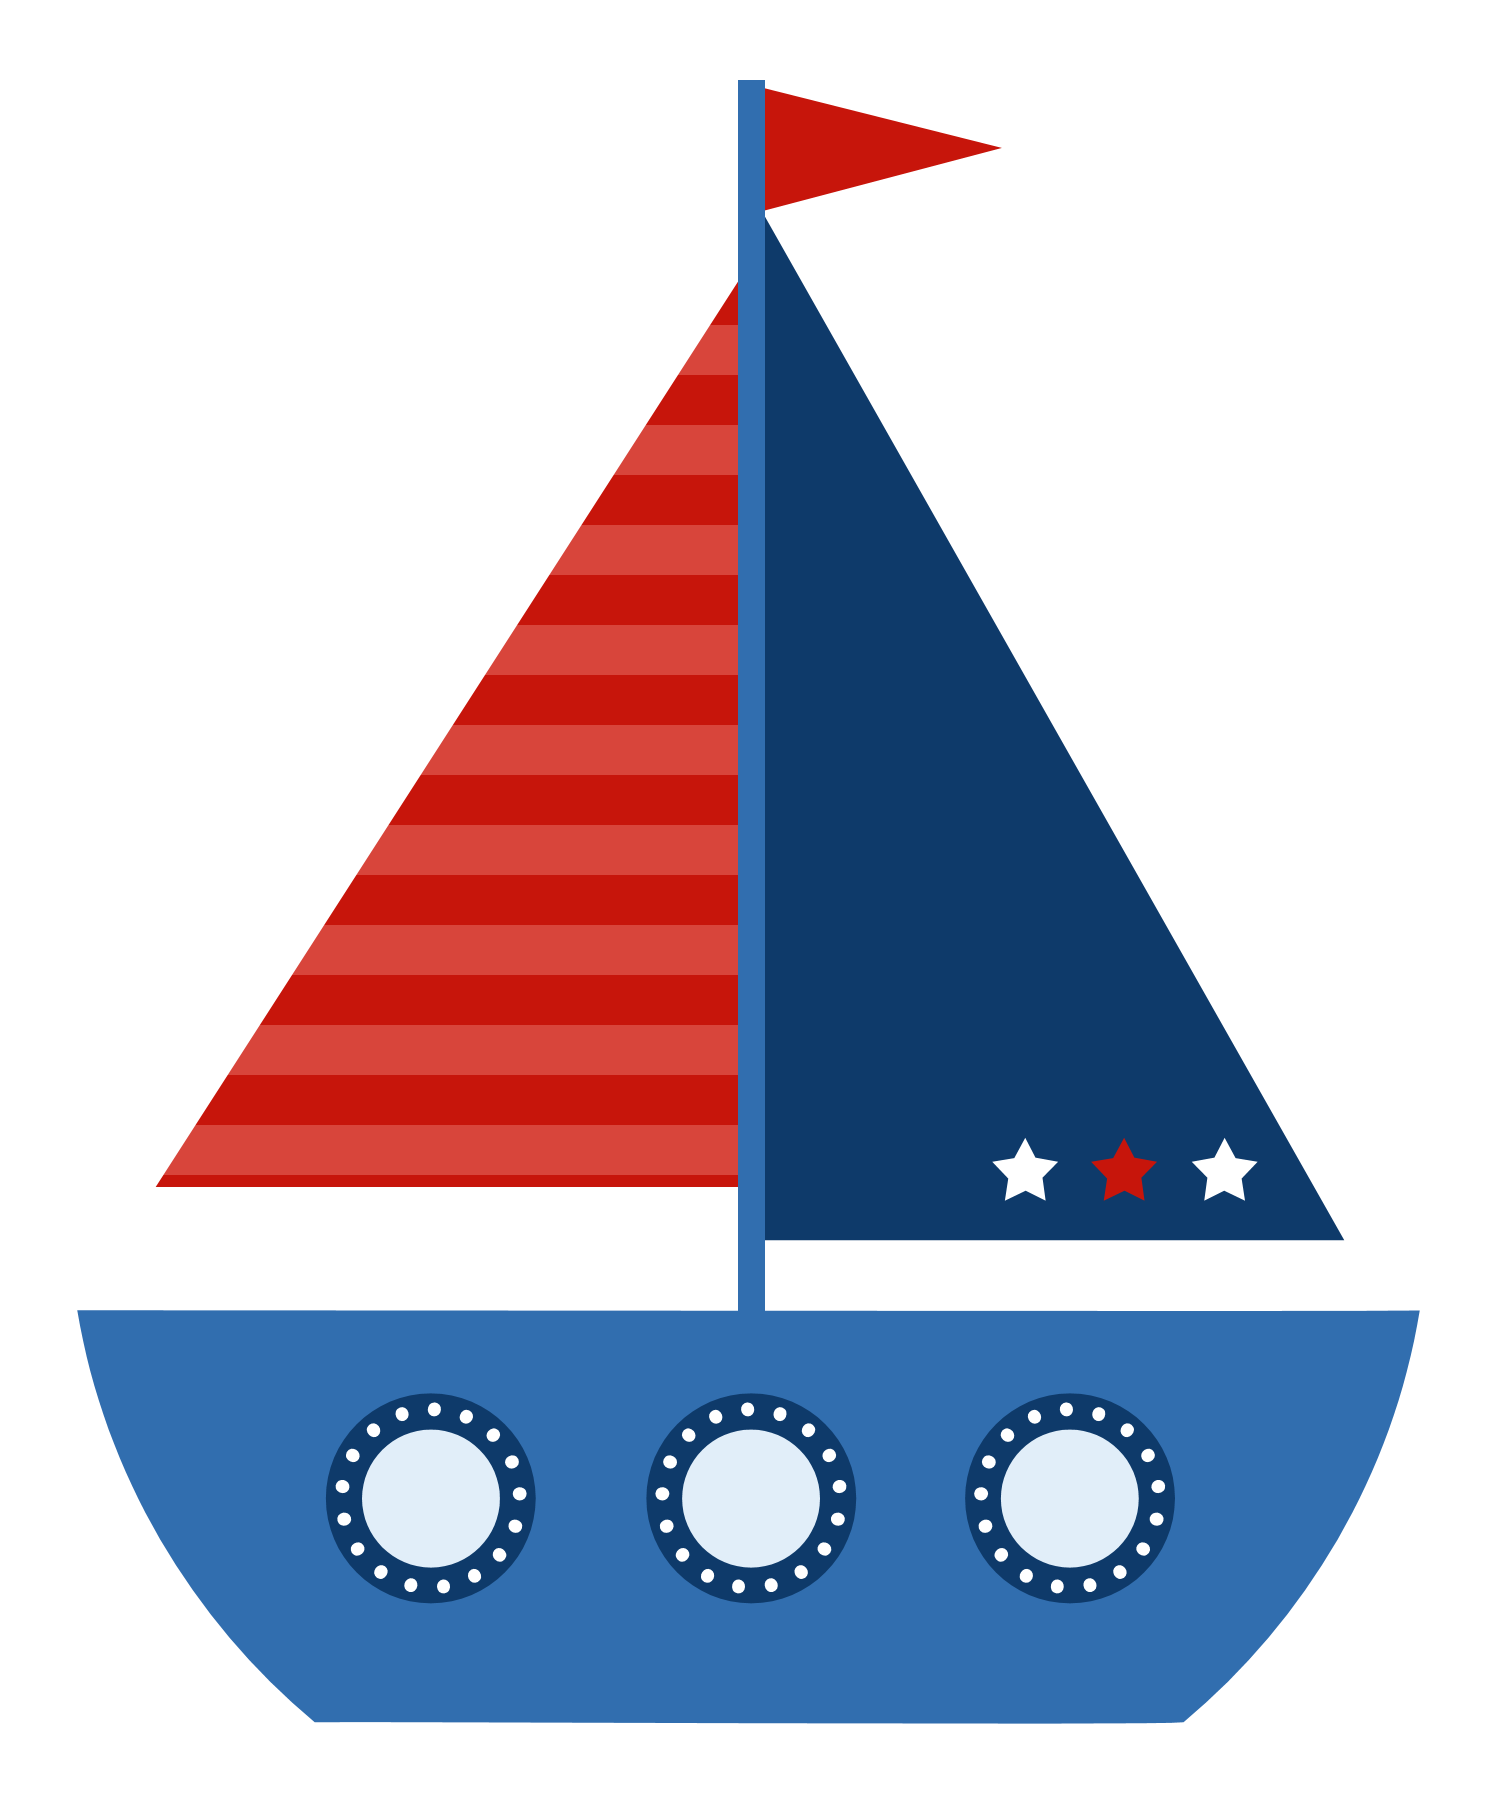 Navy clipart wheel. Blue sailboat free download